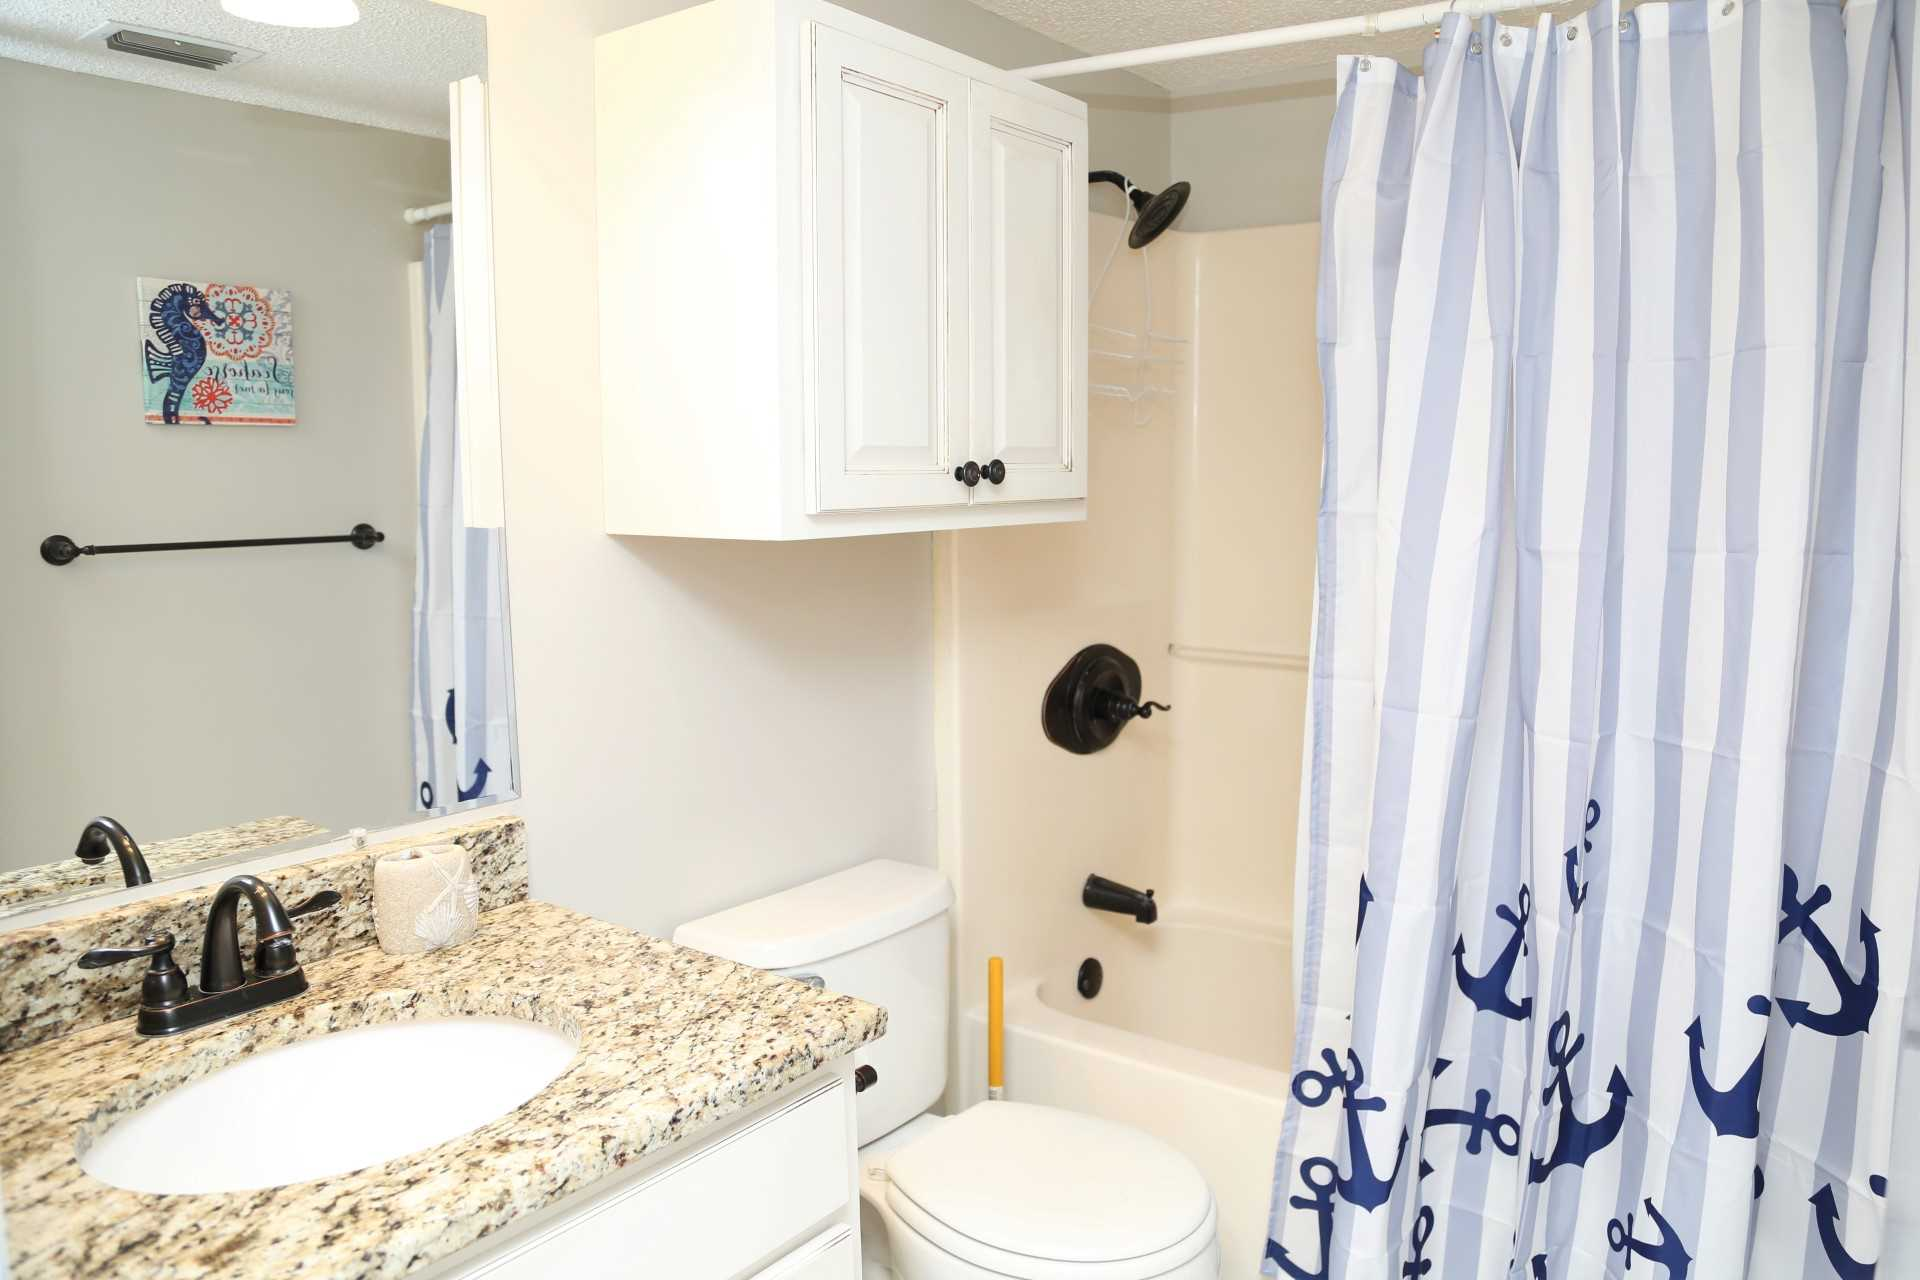 The second bathroom with a tub/shower combo.